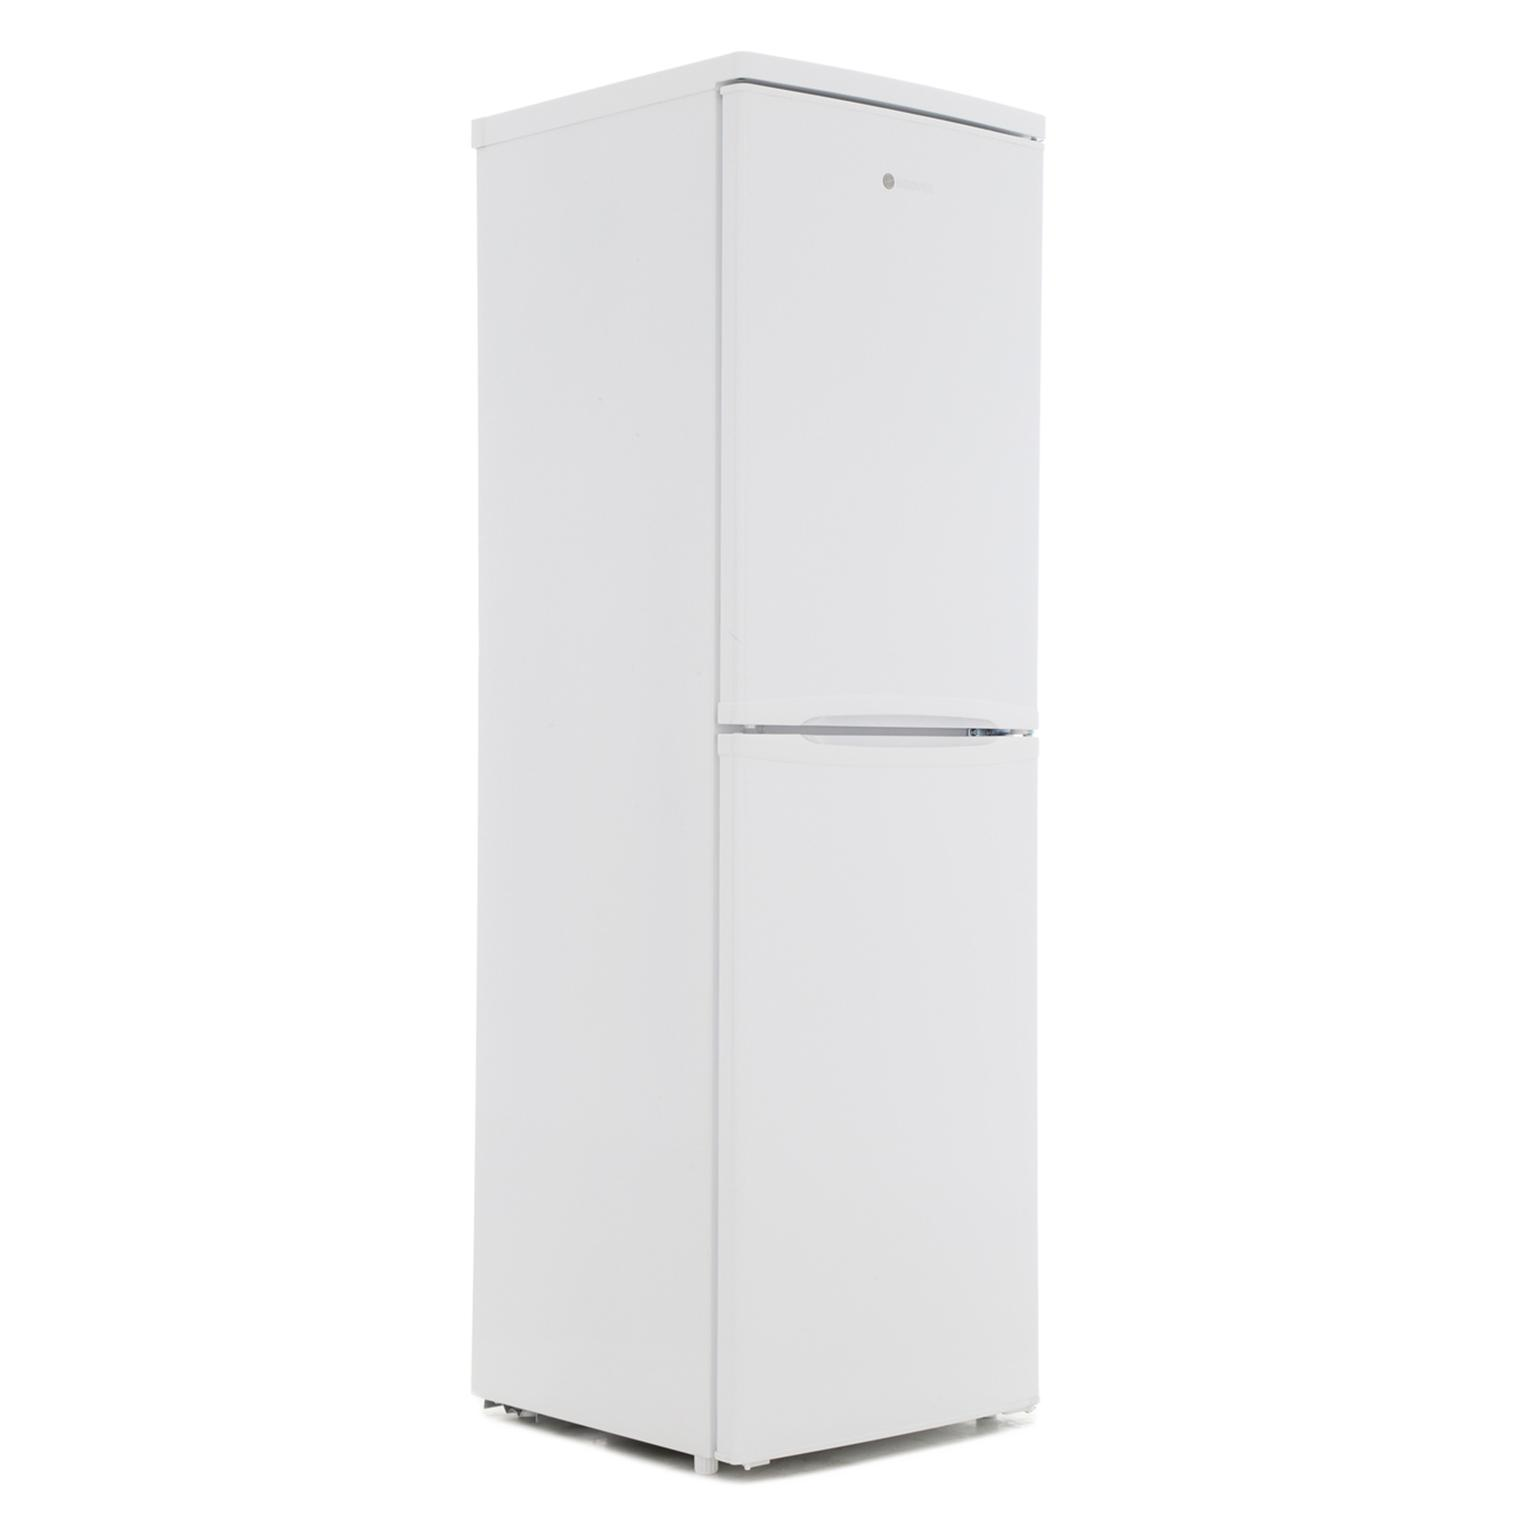 Hoover HSC574W Fridge Freezer